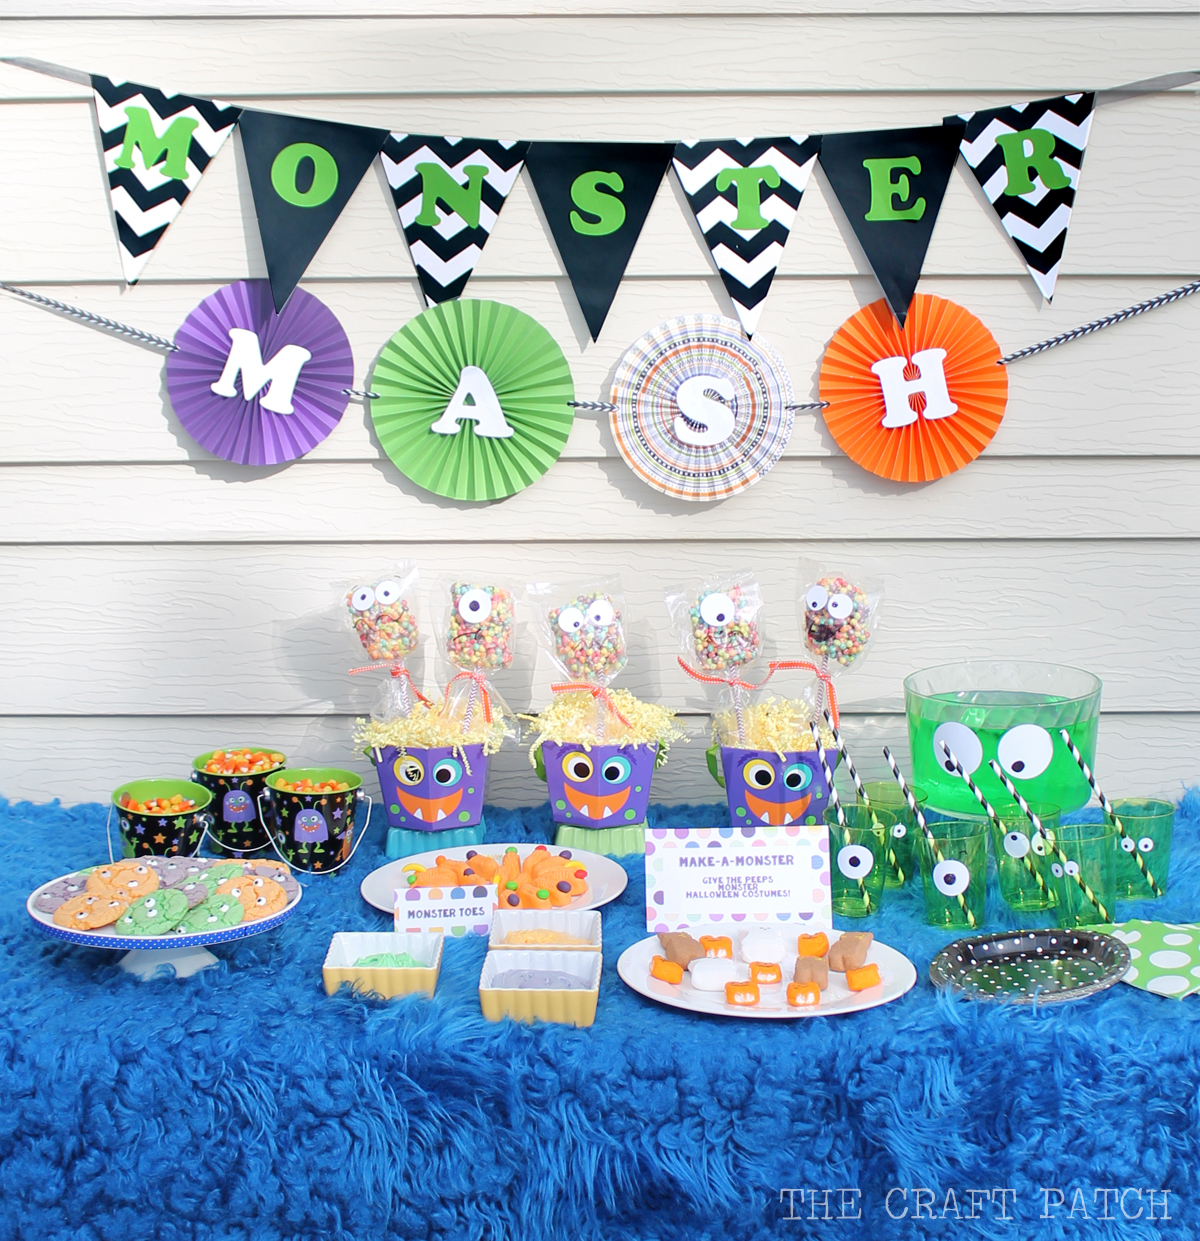 30 Awesome Halloween Games for Kids (and Adults) If you're in charge of planning the Halloween party for school, you'll love these 30 DIY Halloween games for kids and for adults. Whether you are planning a preschool party or need something for tweens and tweens, these games are perfect for all ages.